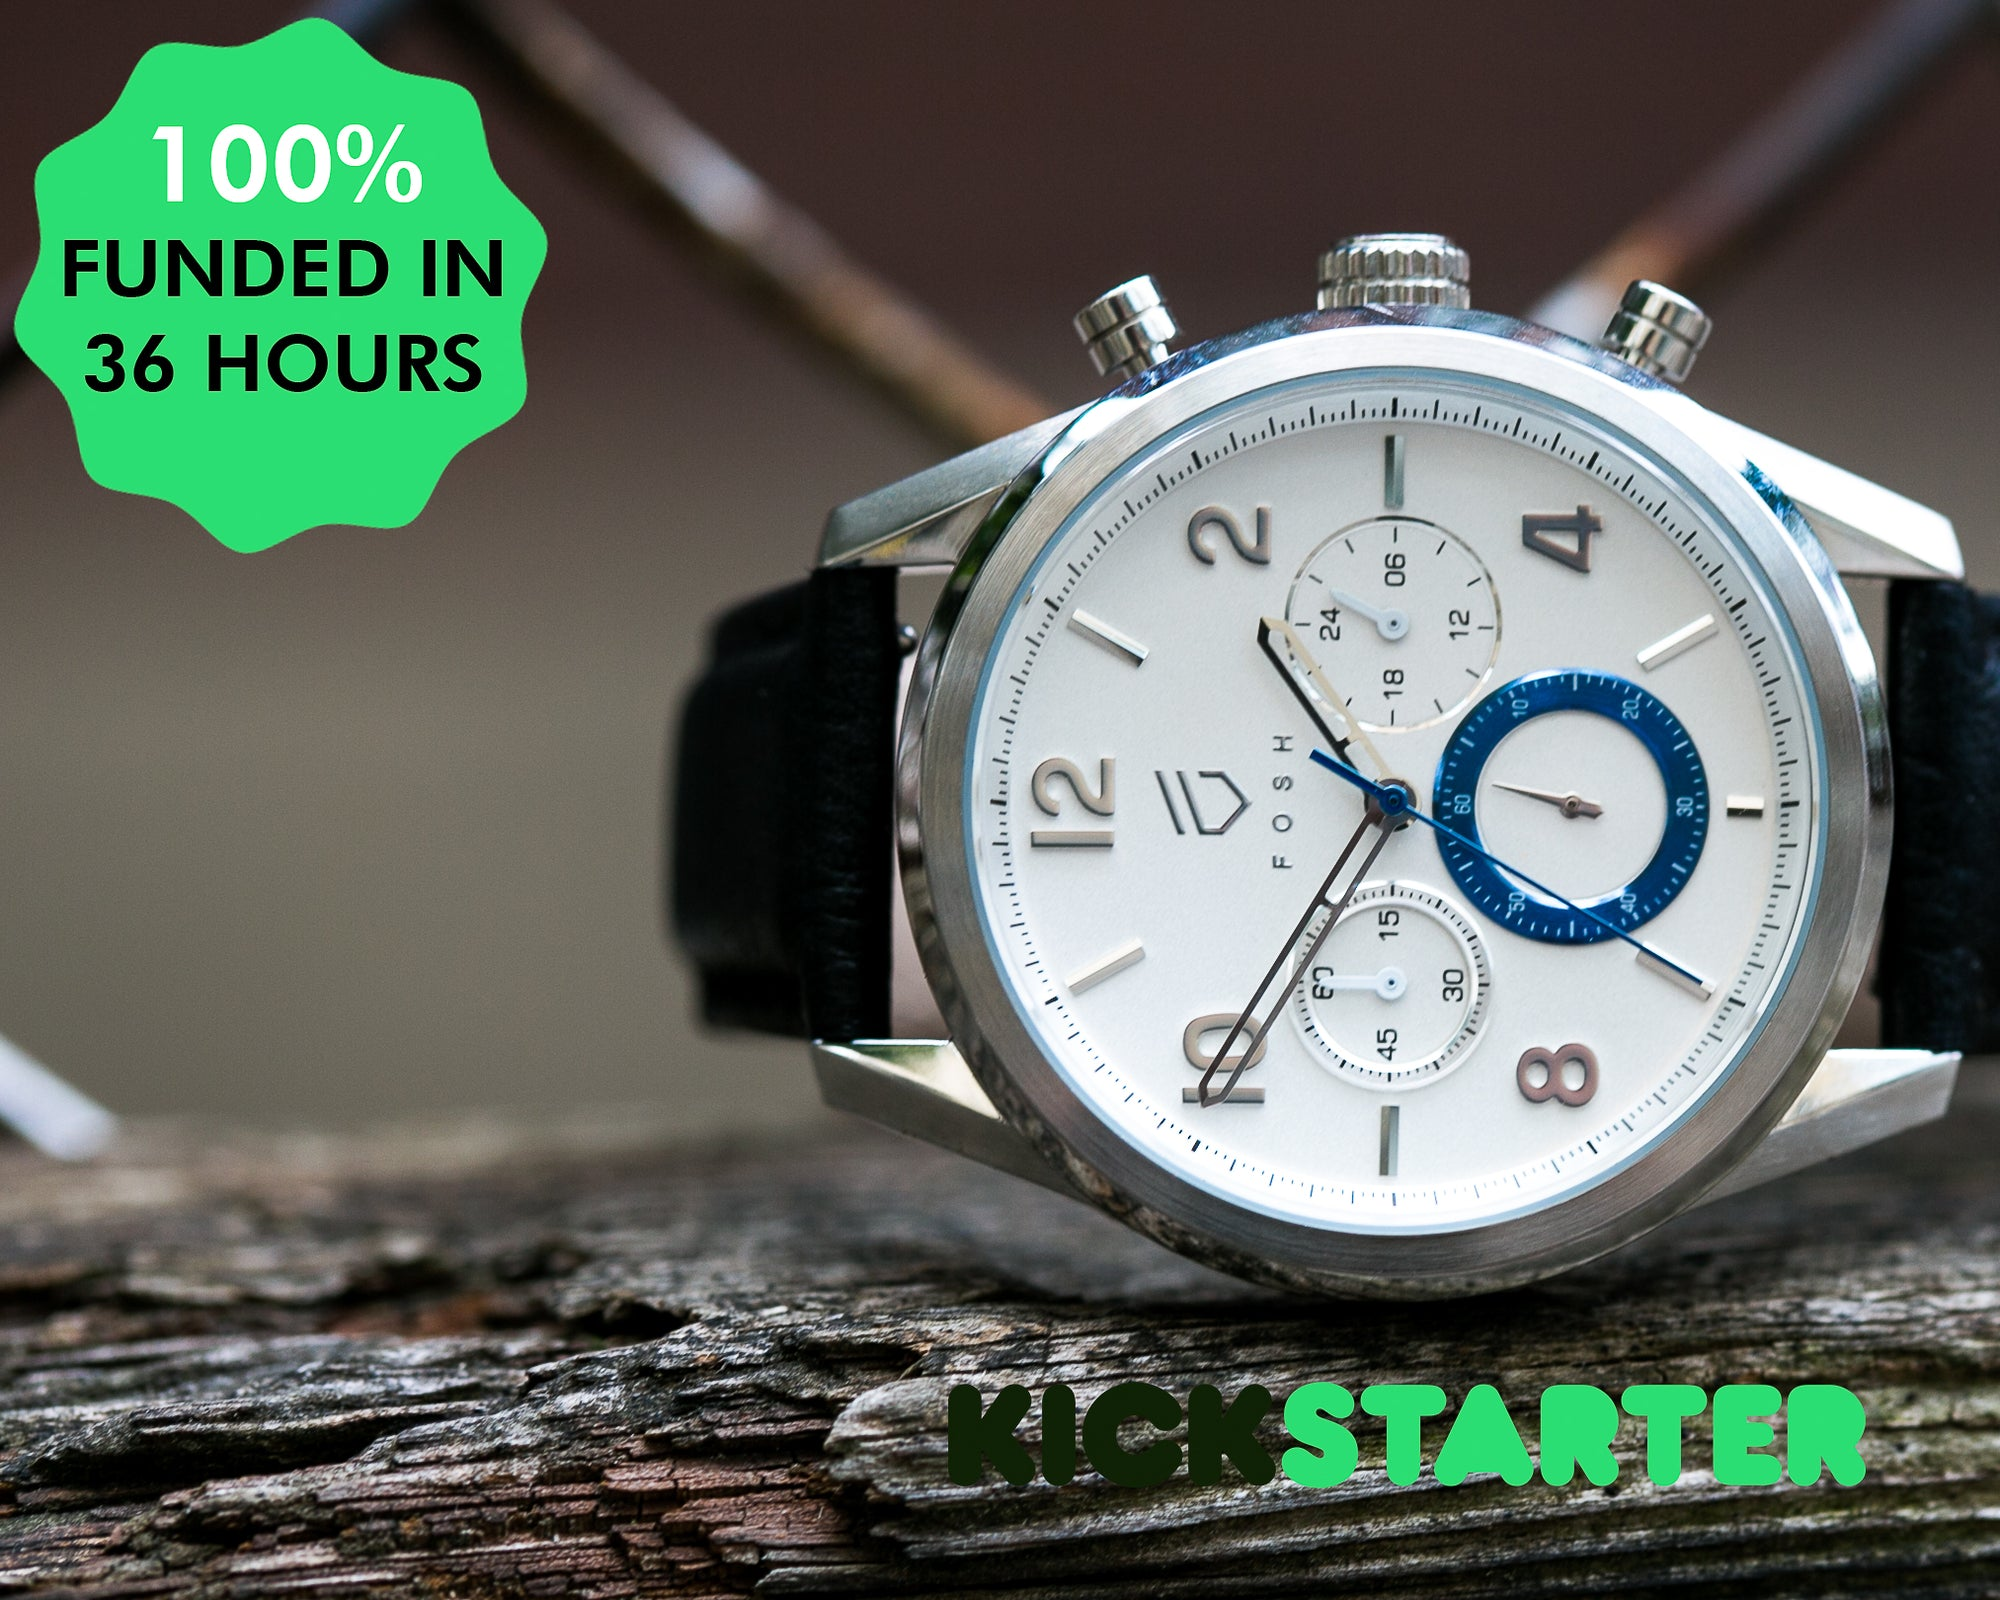 Stainless steel watch with white face and blue second hand on distressed wood with 100% funded on kickstarter sticker